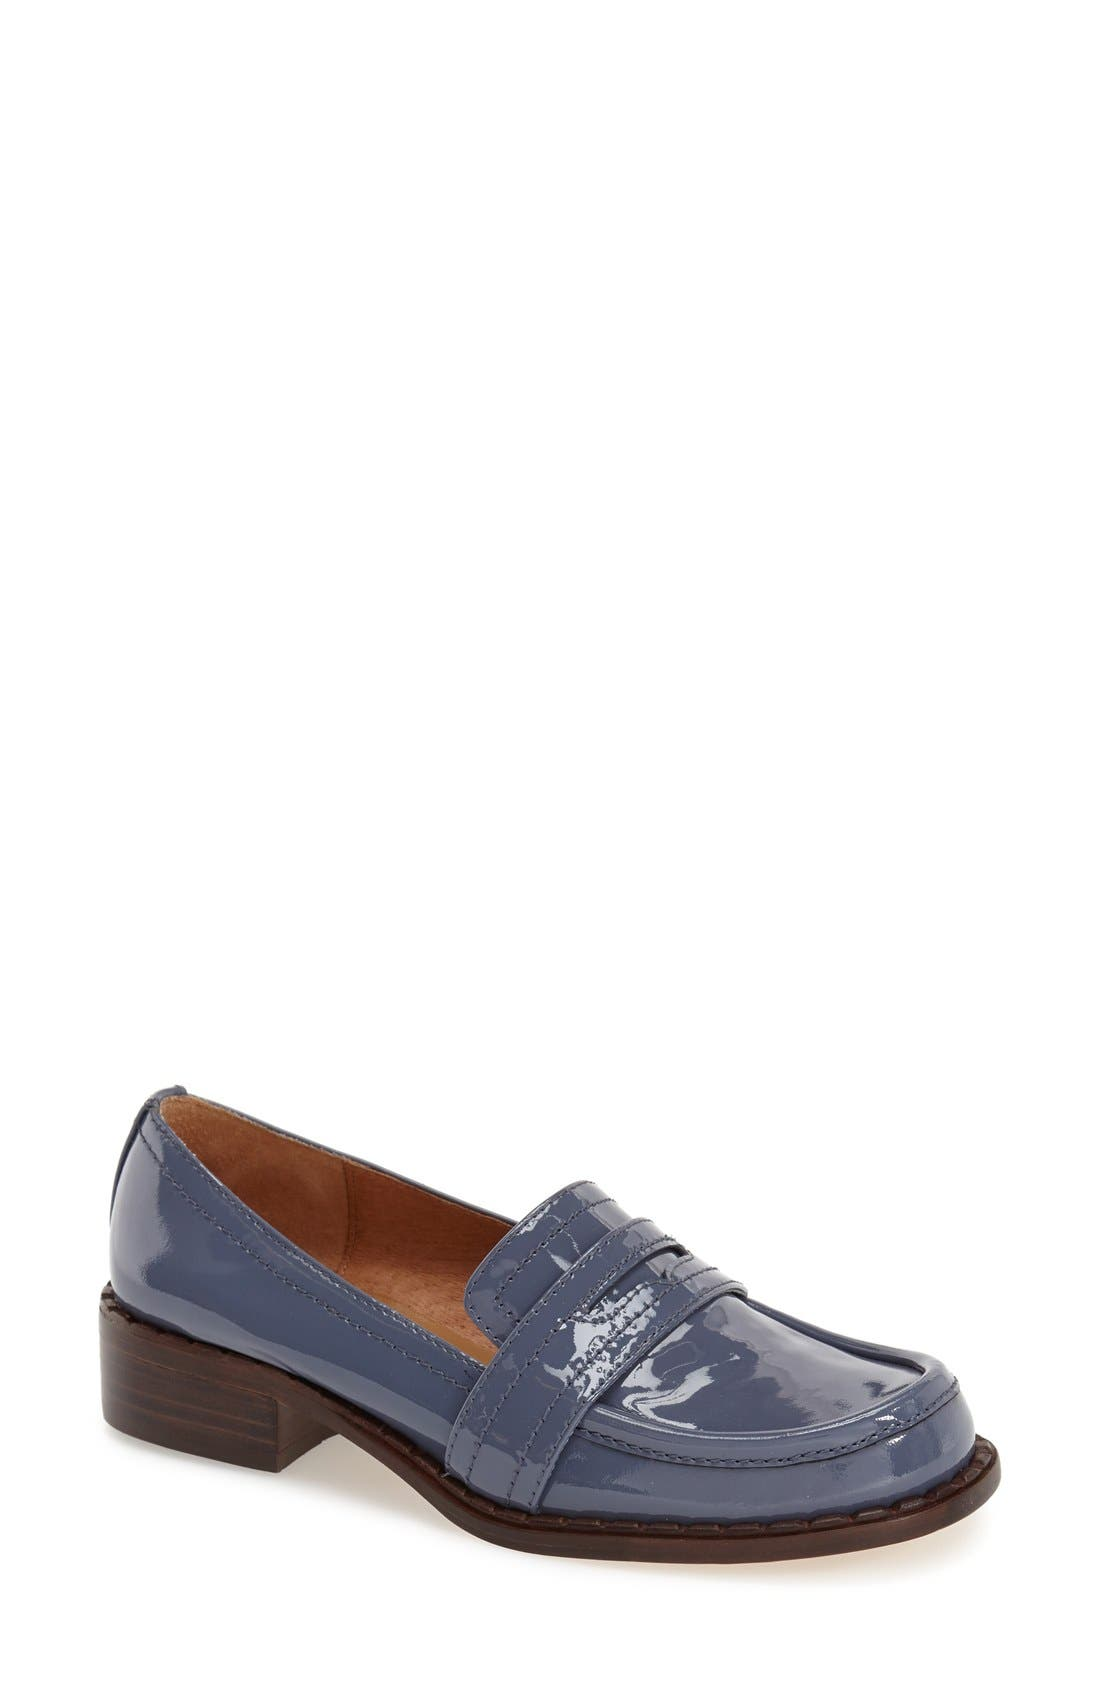 'Mystique' Penny Loafer,                             Main thumbnail 1, color,                             405